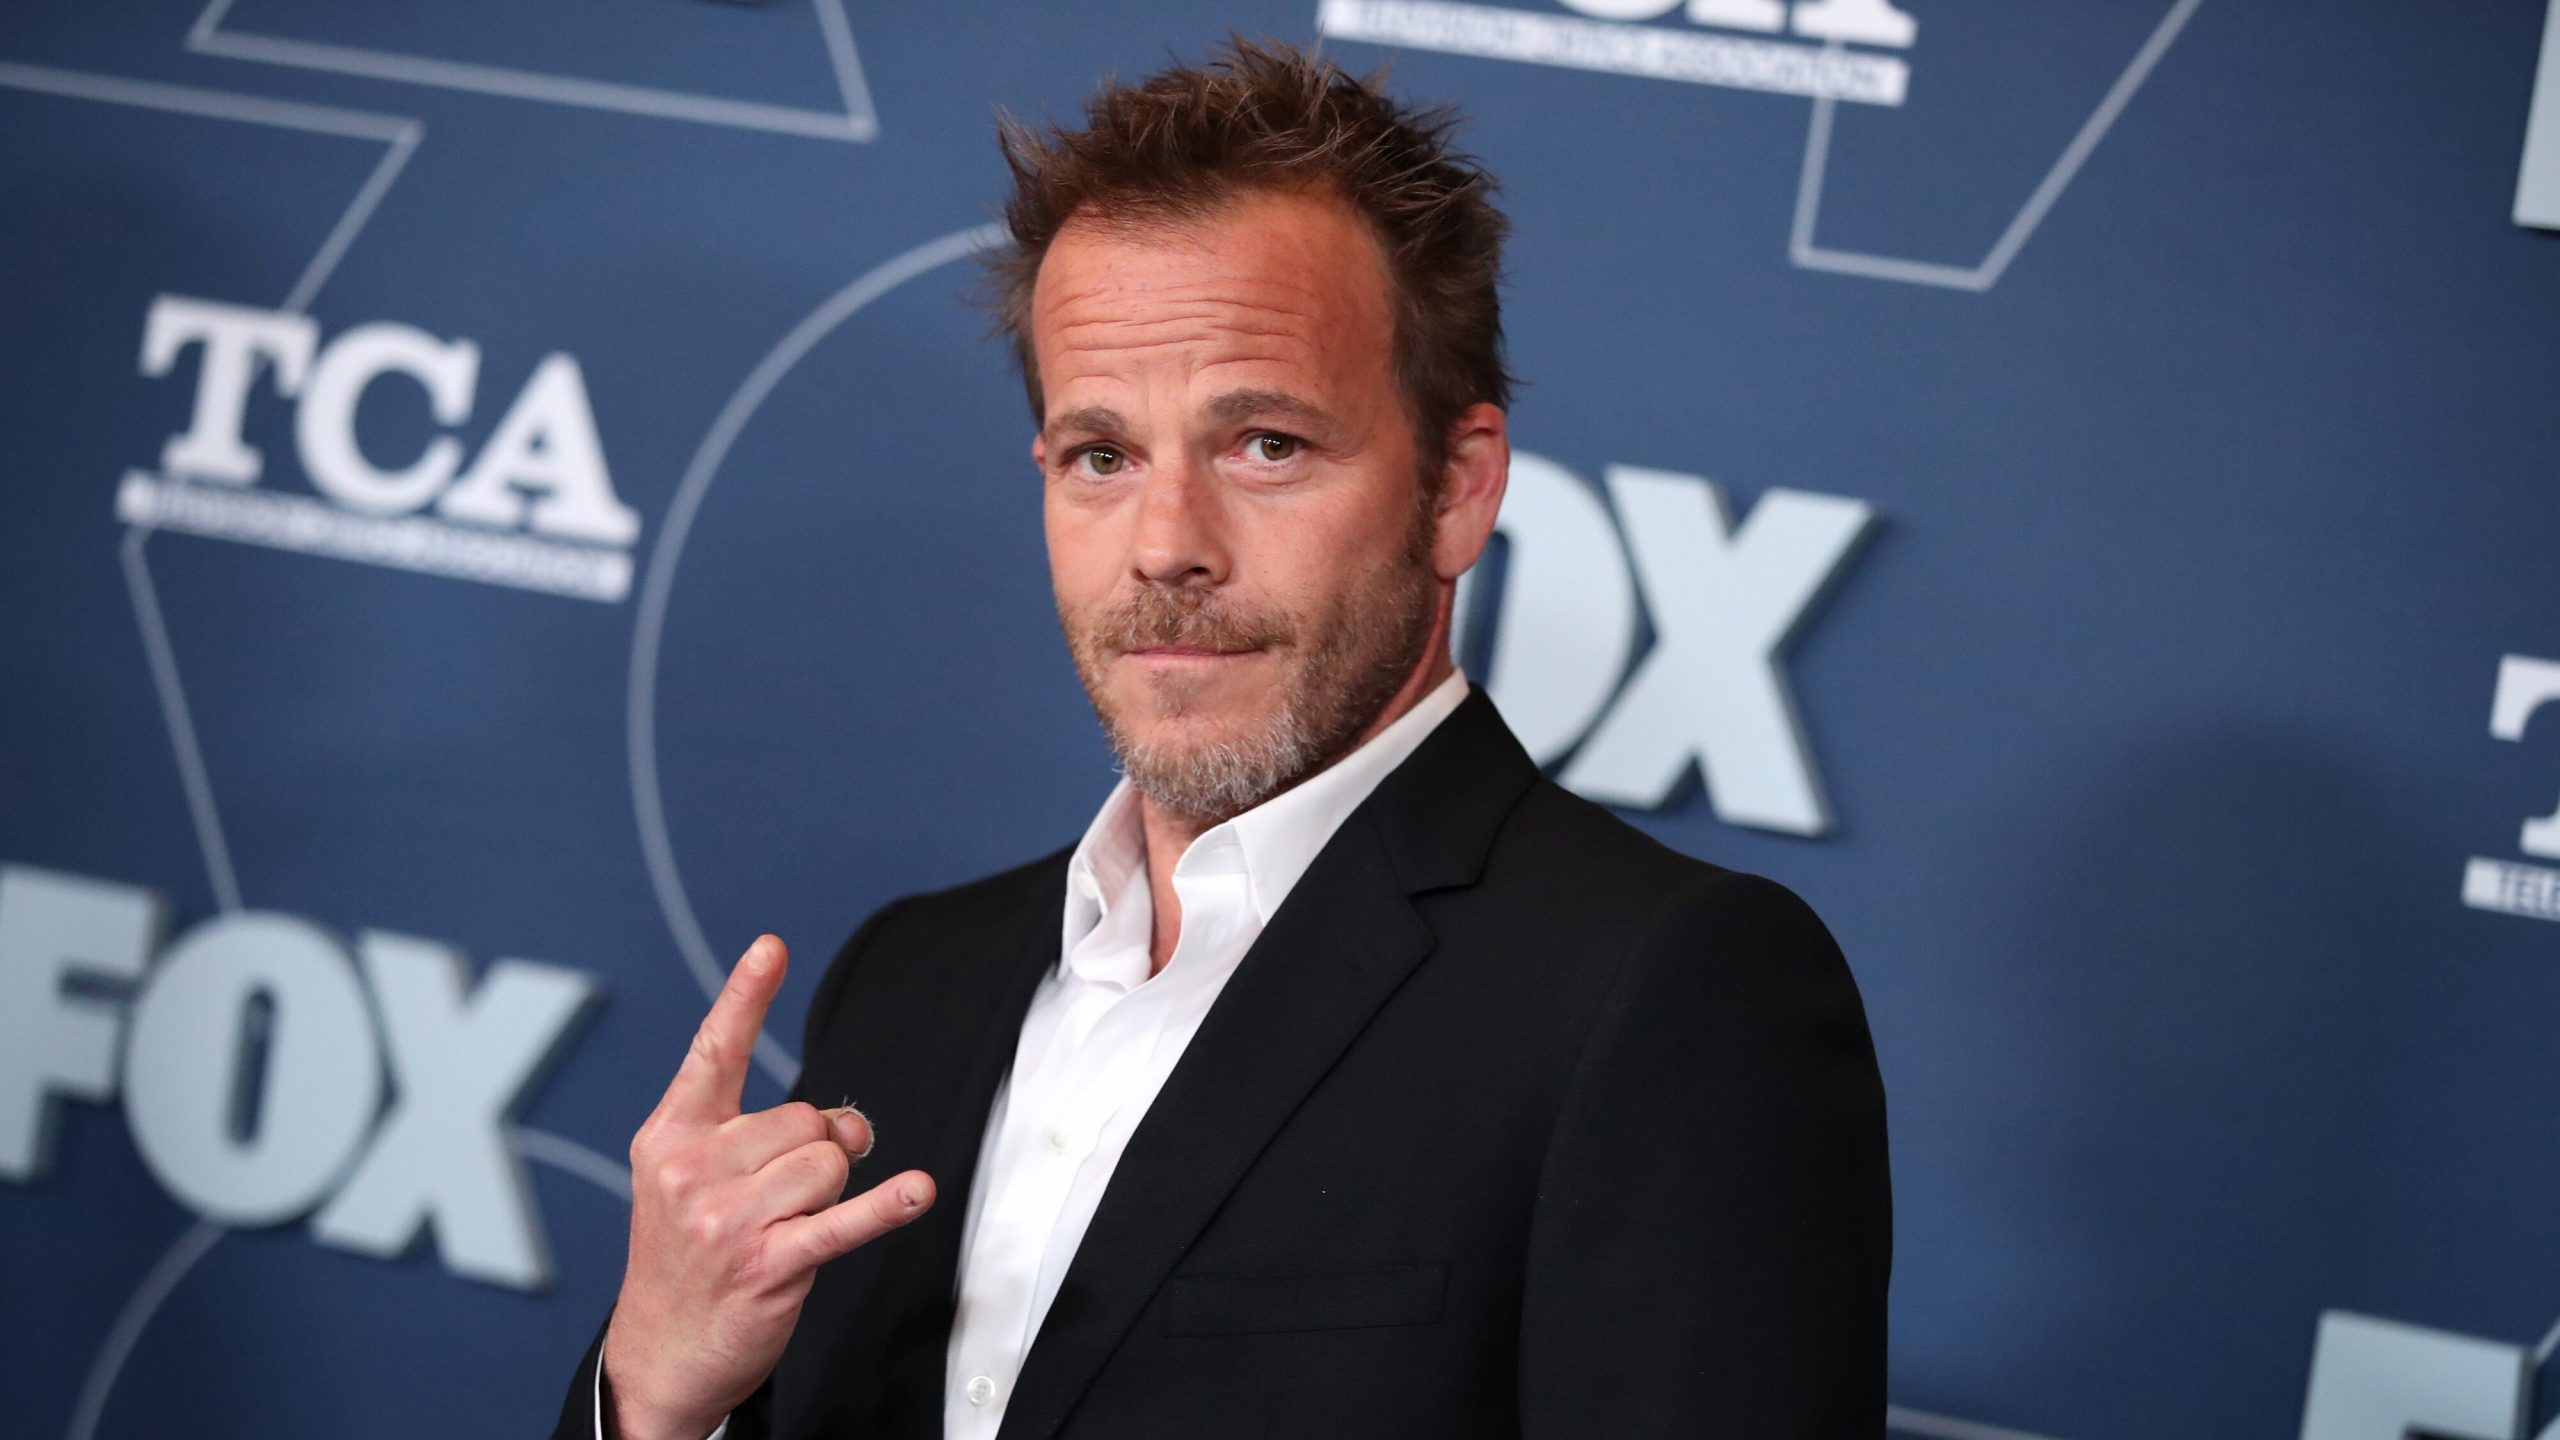 Stephen Dorff on how he's stayed grounded in Hollywood amid early fame and success